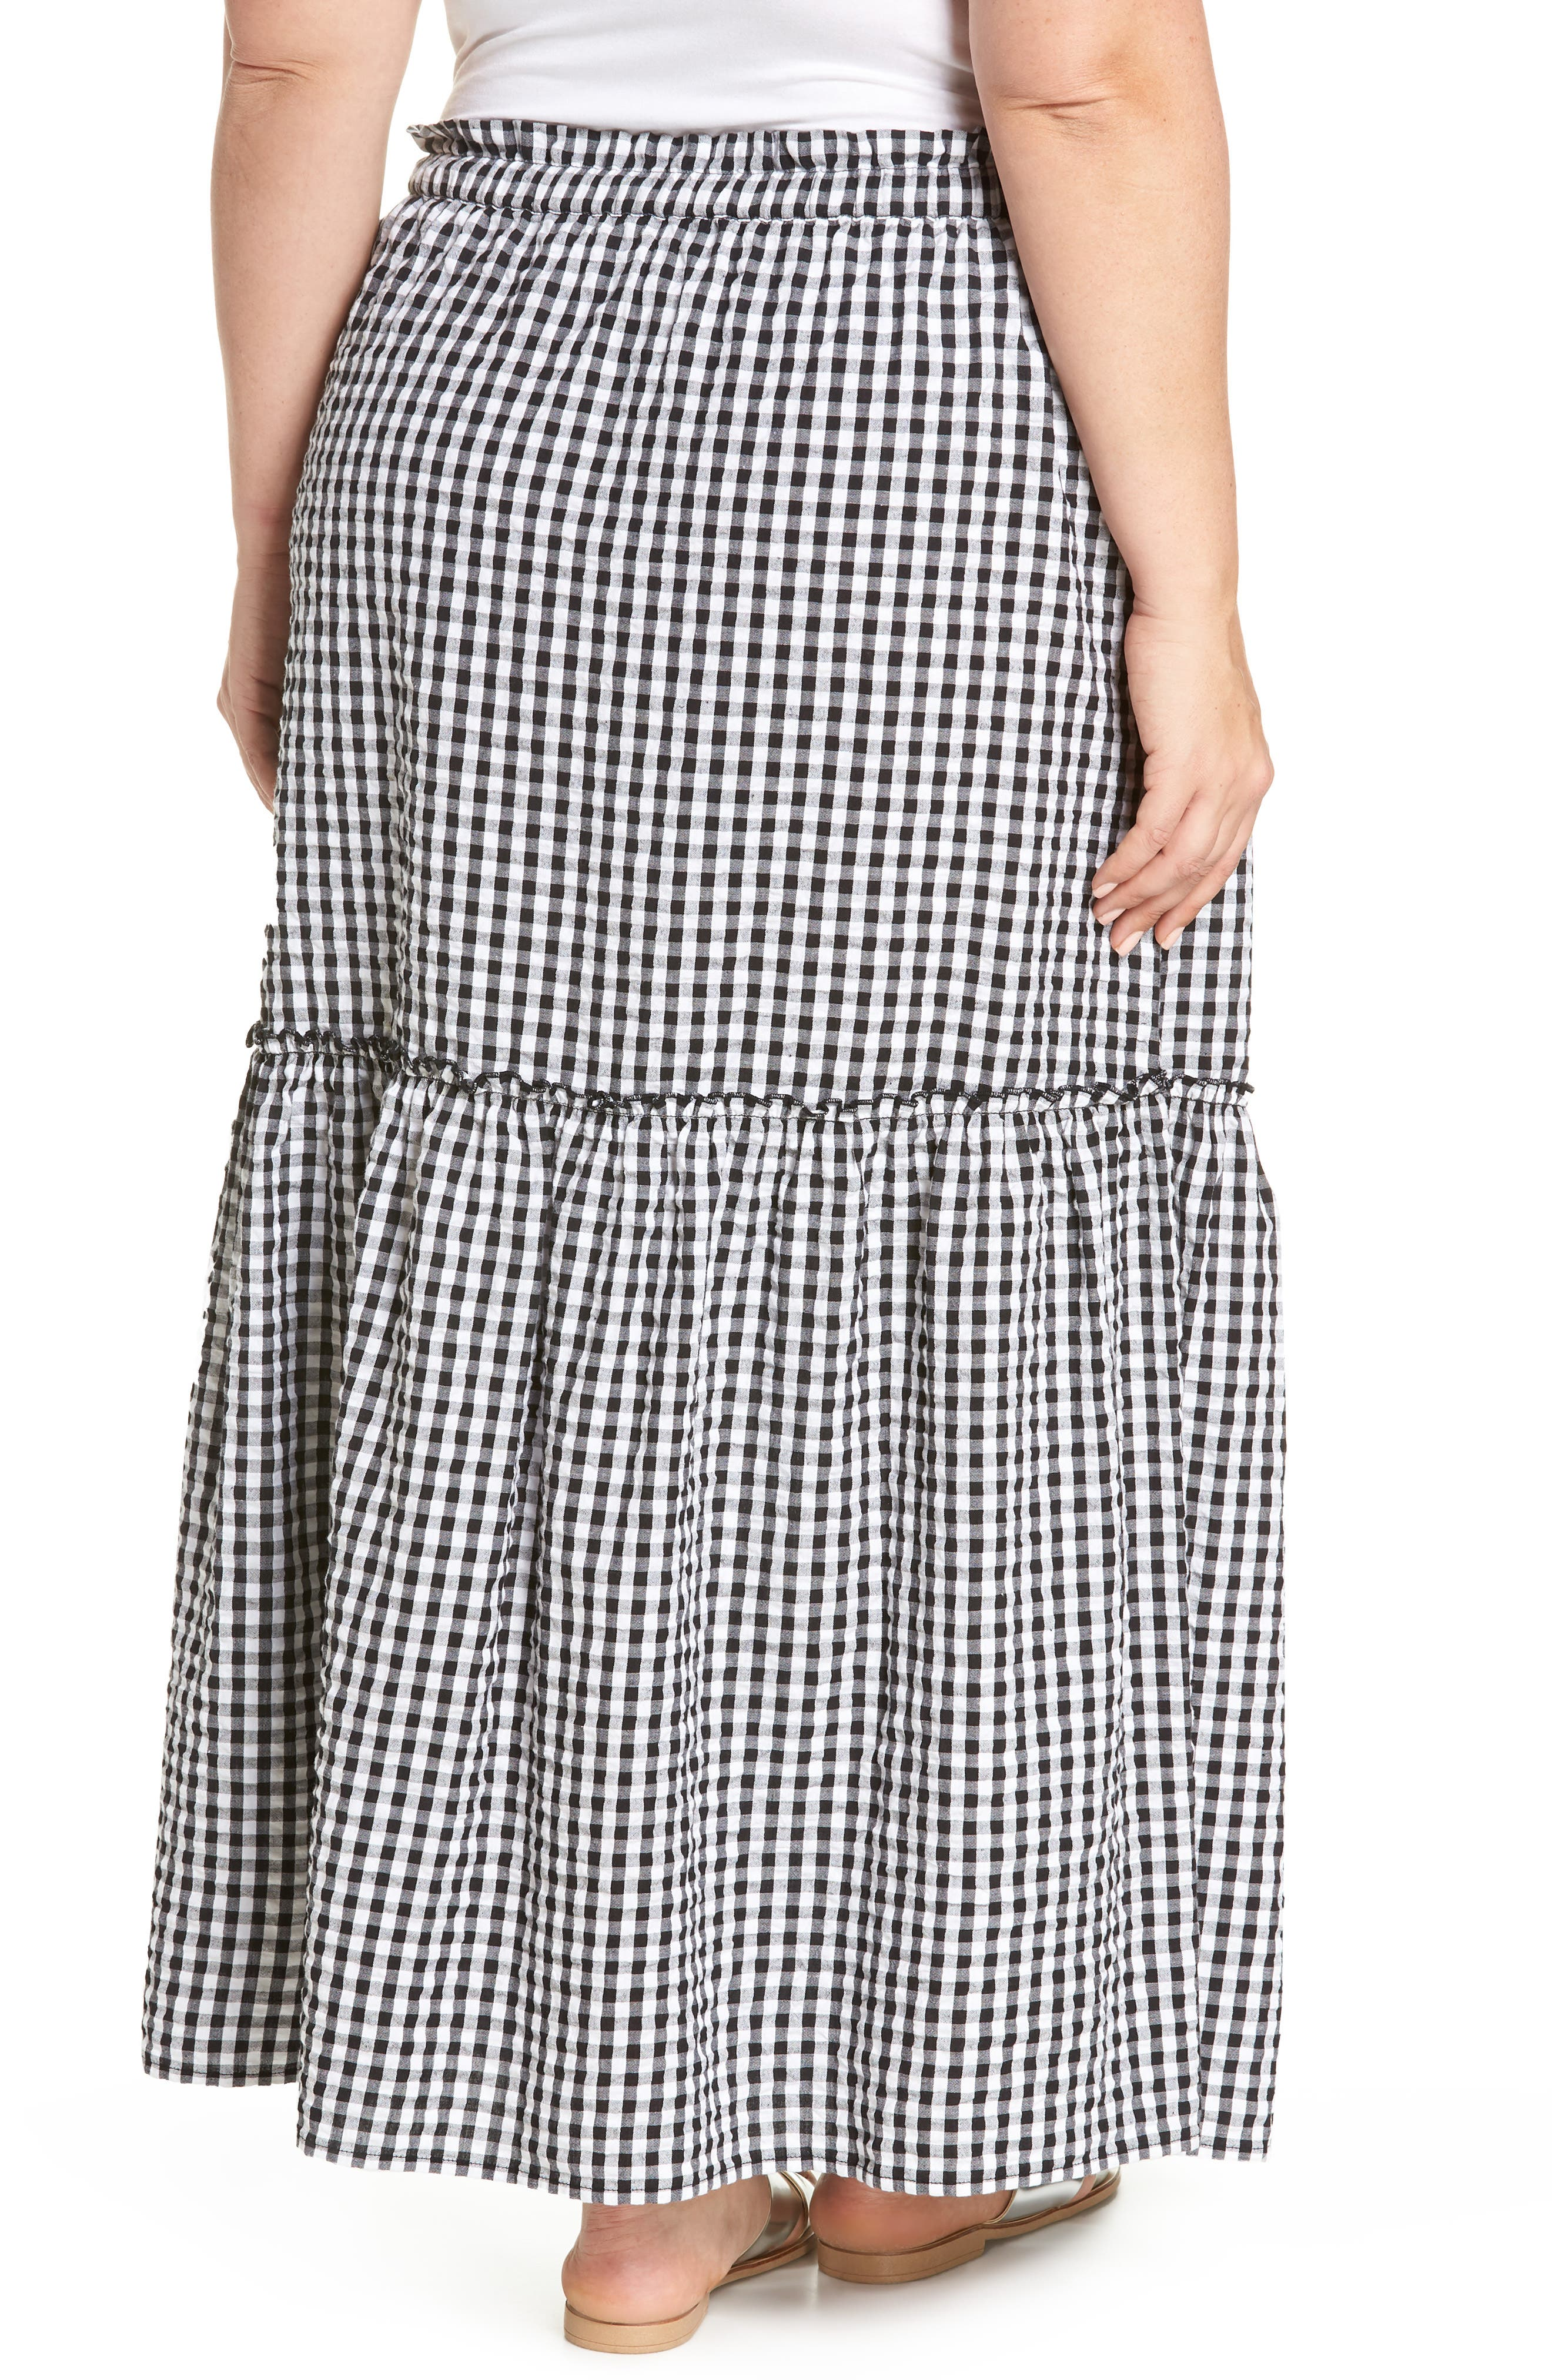 Ruffle Hem Maxi Skirt,                             Alternate thumbnail 2, color,                             001